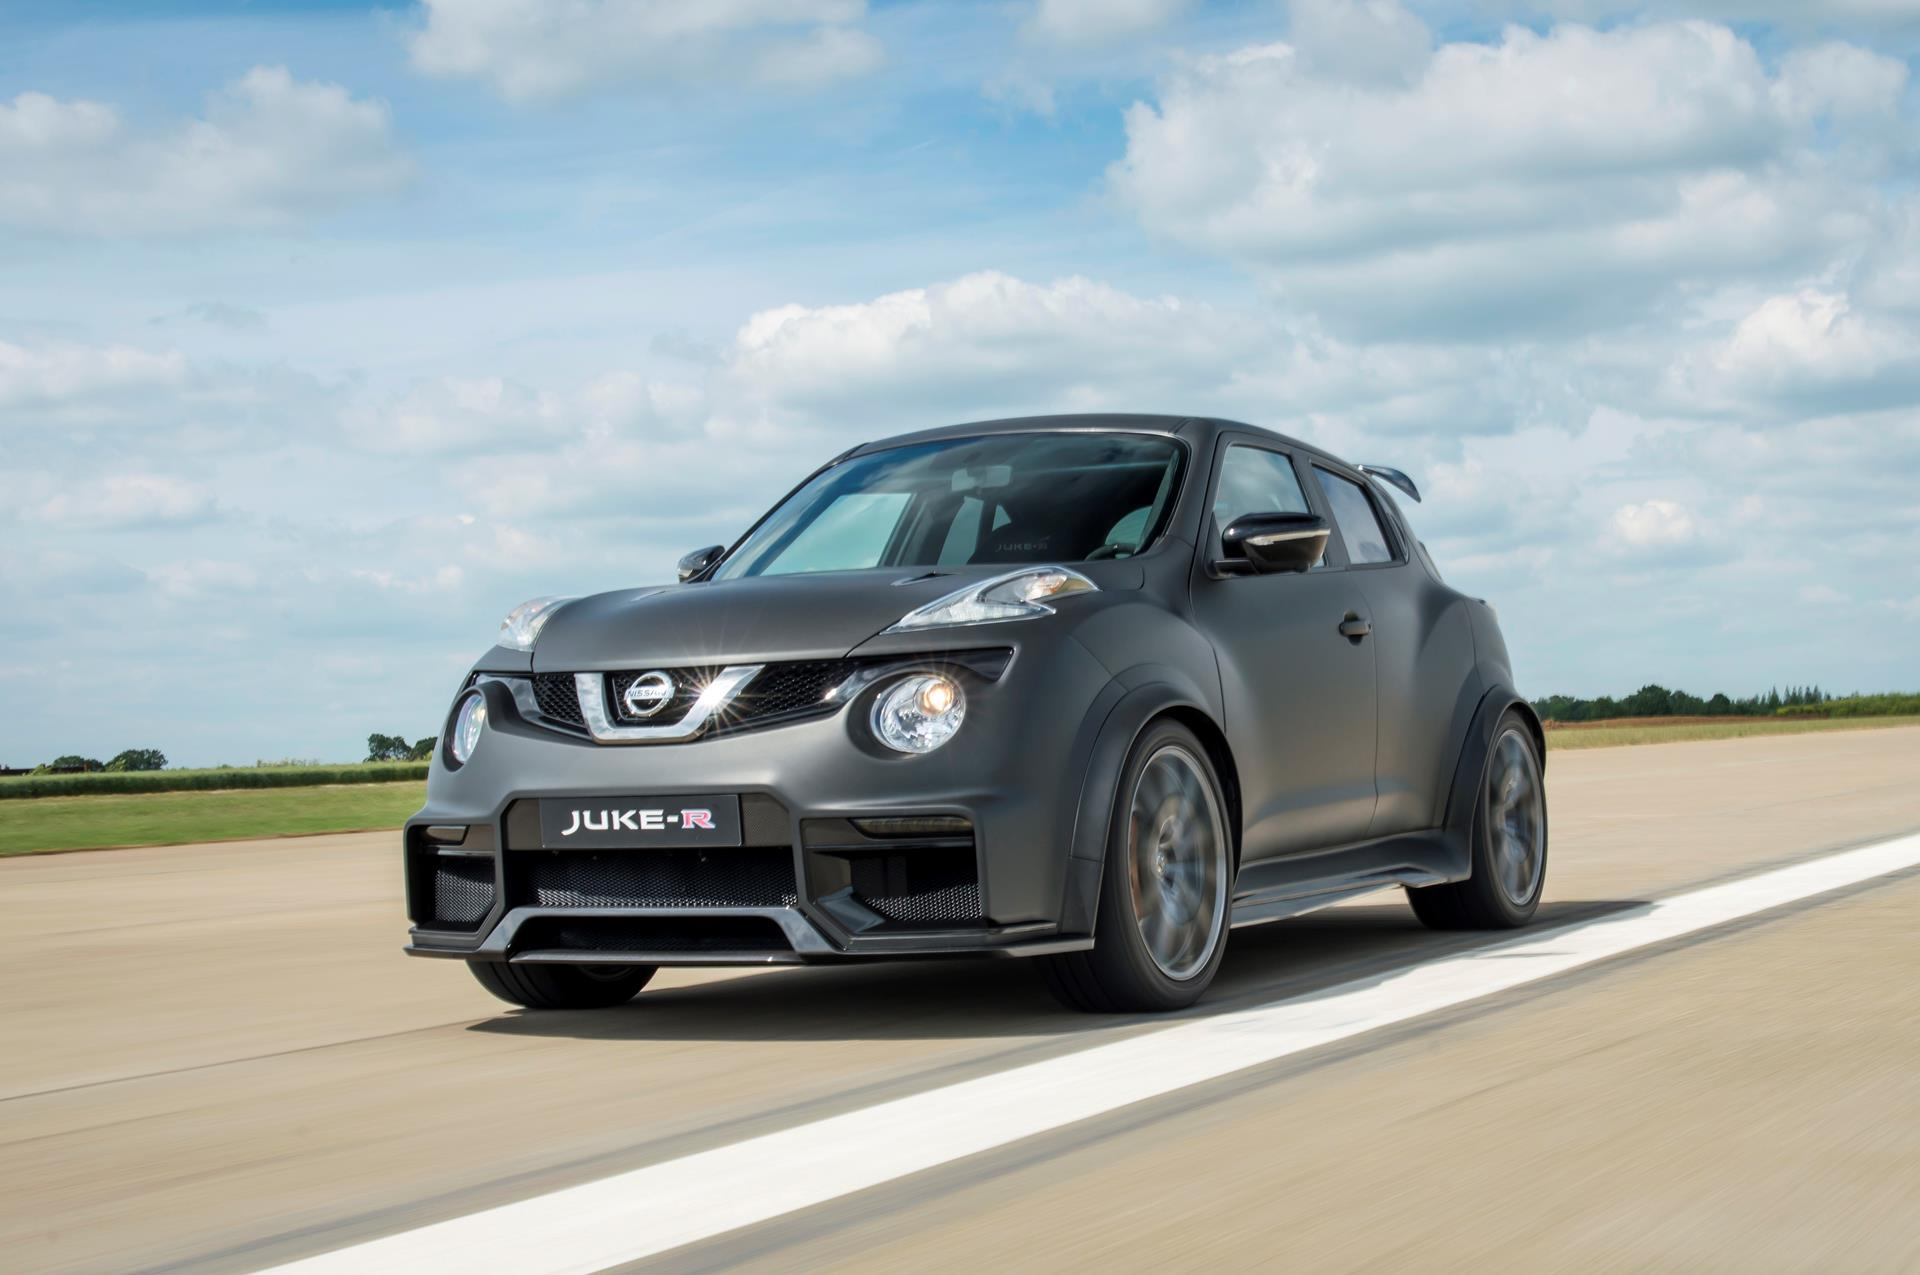 2016 nissan juke r 2 0 news and information for Nissan juke dauertest